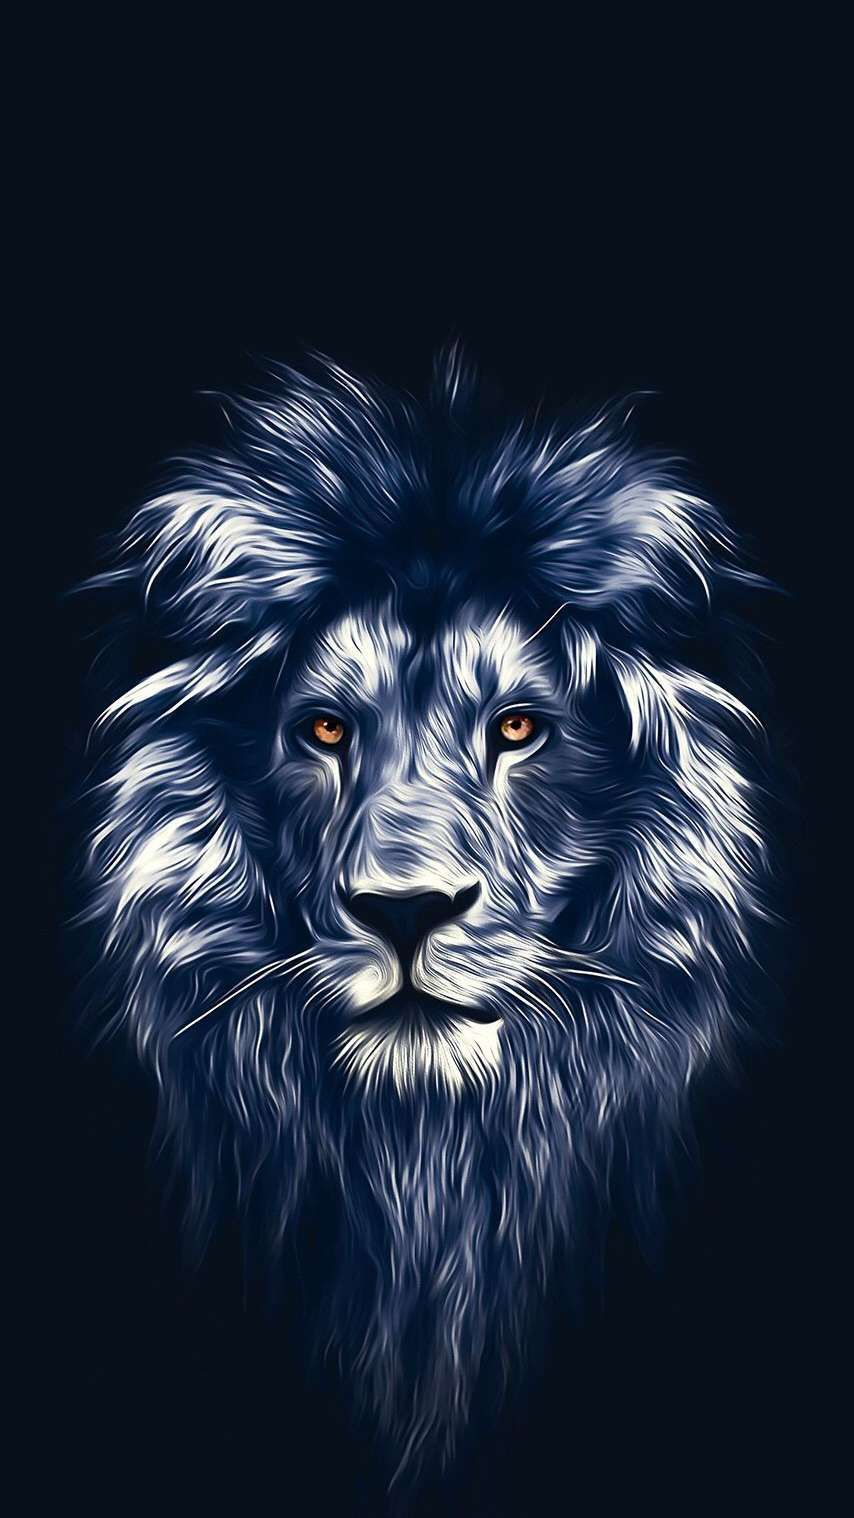 Mobile 3d Animal Wallpaper In 2020 Lion Pictures Lion Wallpaper Lion Painting